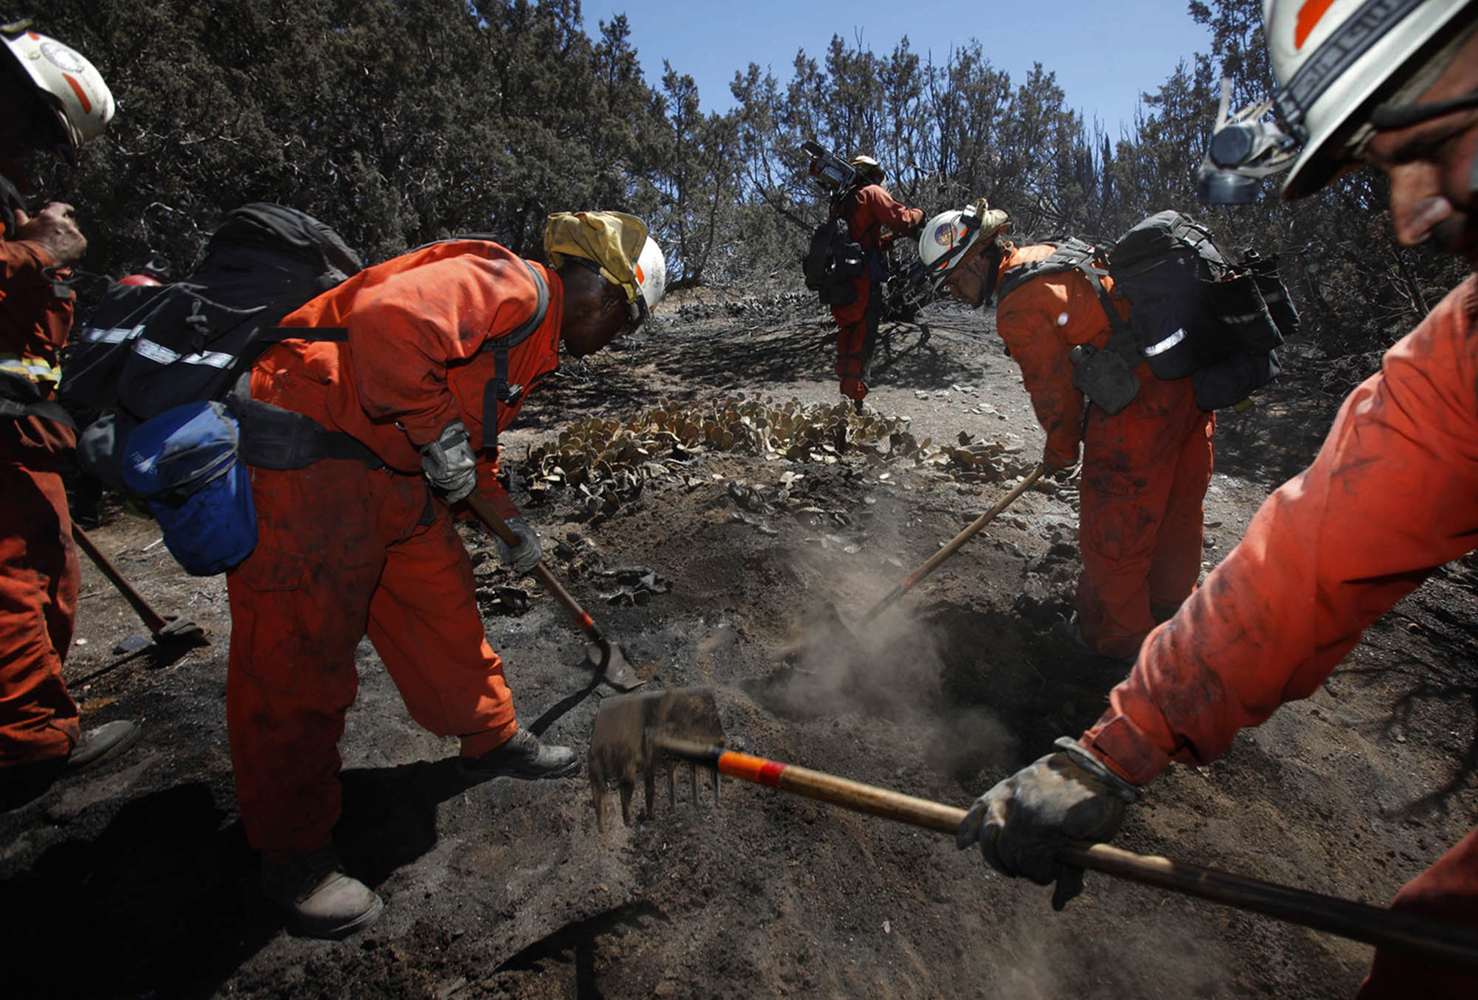 Inmate firefighters based in Acton, California, work to overhaul hot spots left from the Crown Fire in Palmdale, California, on Saturday, July 31, 2010.  The Crown Fire has burned more than 14,000 acres.